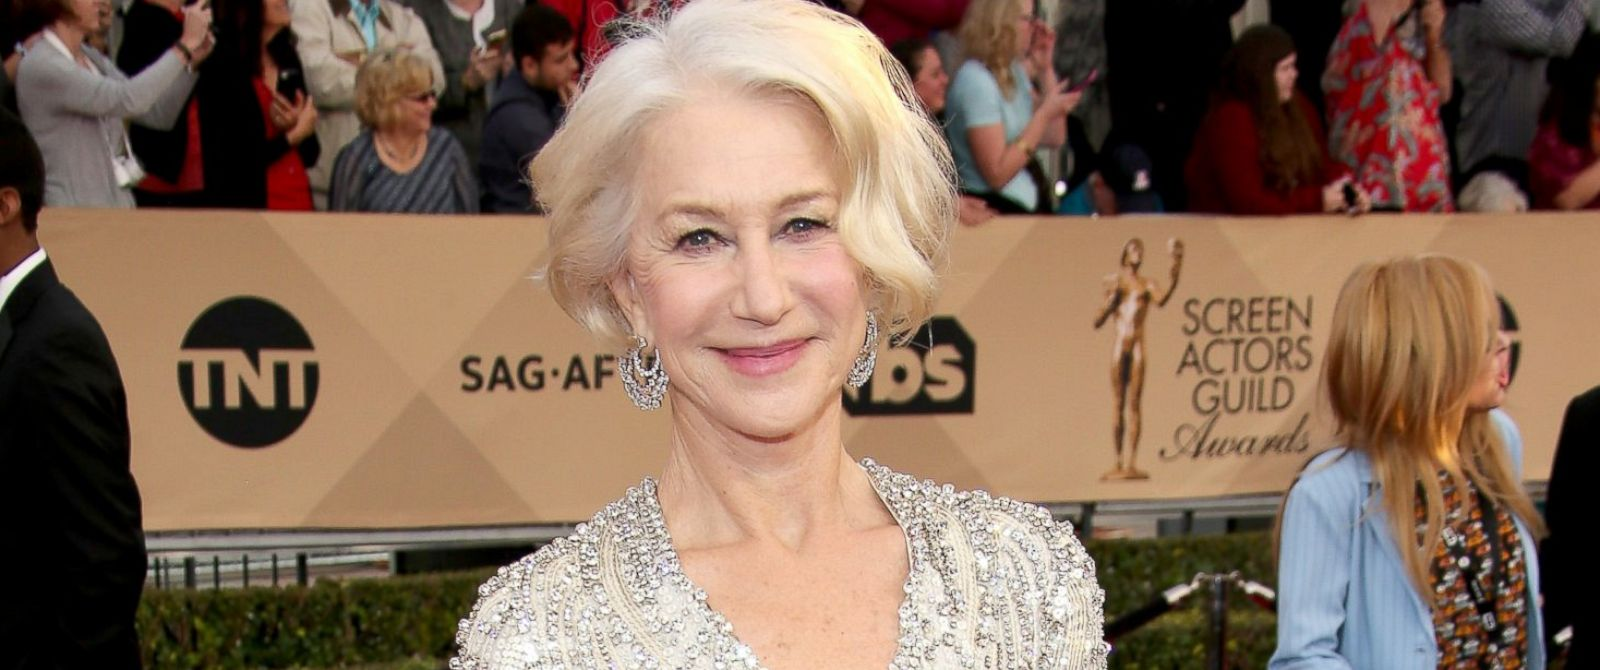 PHOTO: Actress Helen Mirren attends the 22nd Annual Screen Actors Guild Awards at The Shrine Auditorium, Jan. 30, 2016, in Los Angeles.